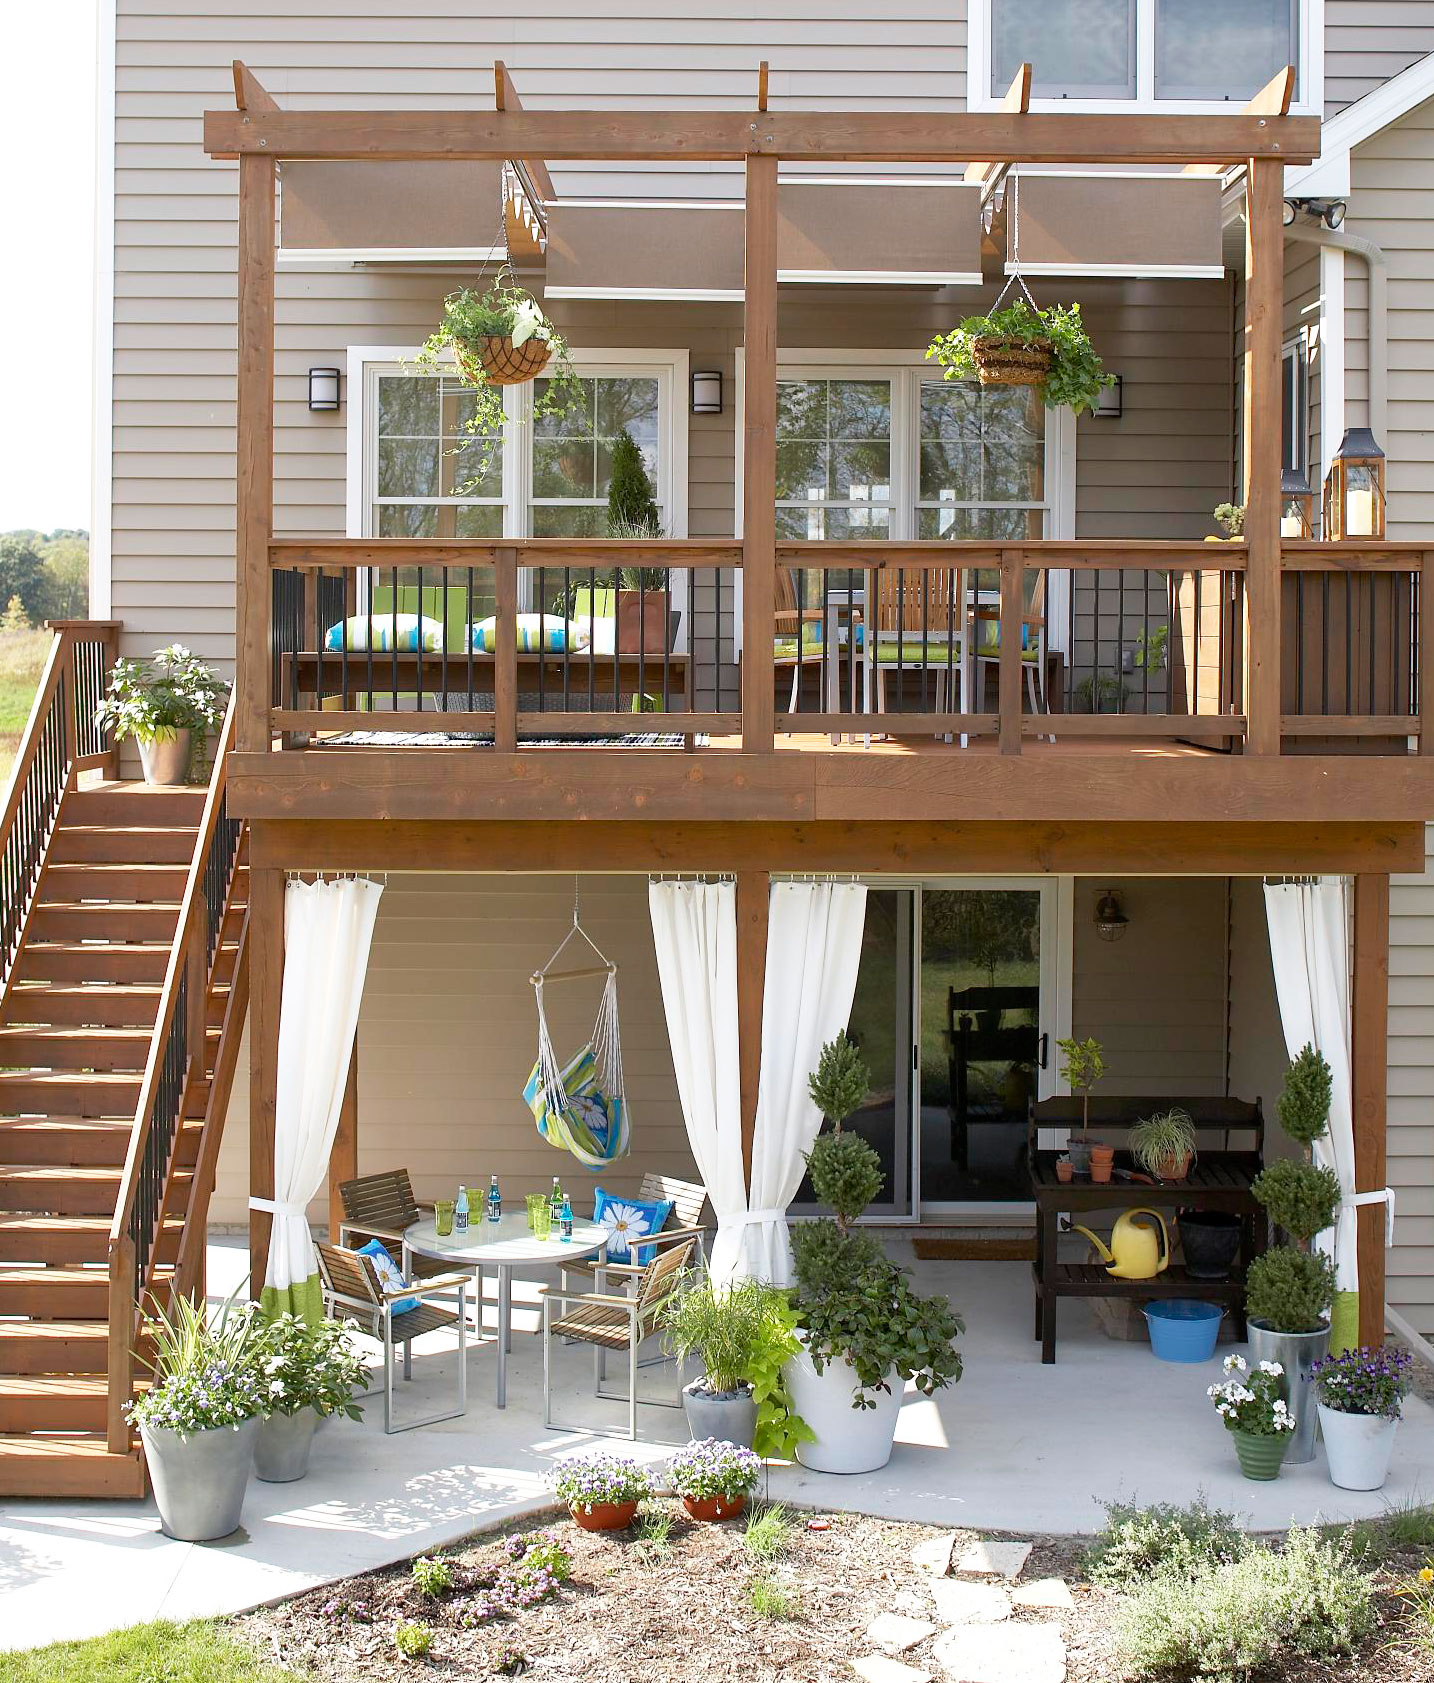 Use space under decks